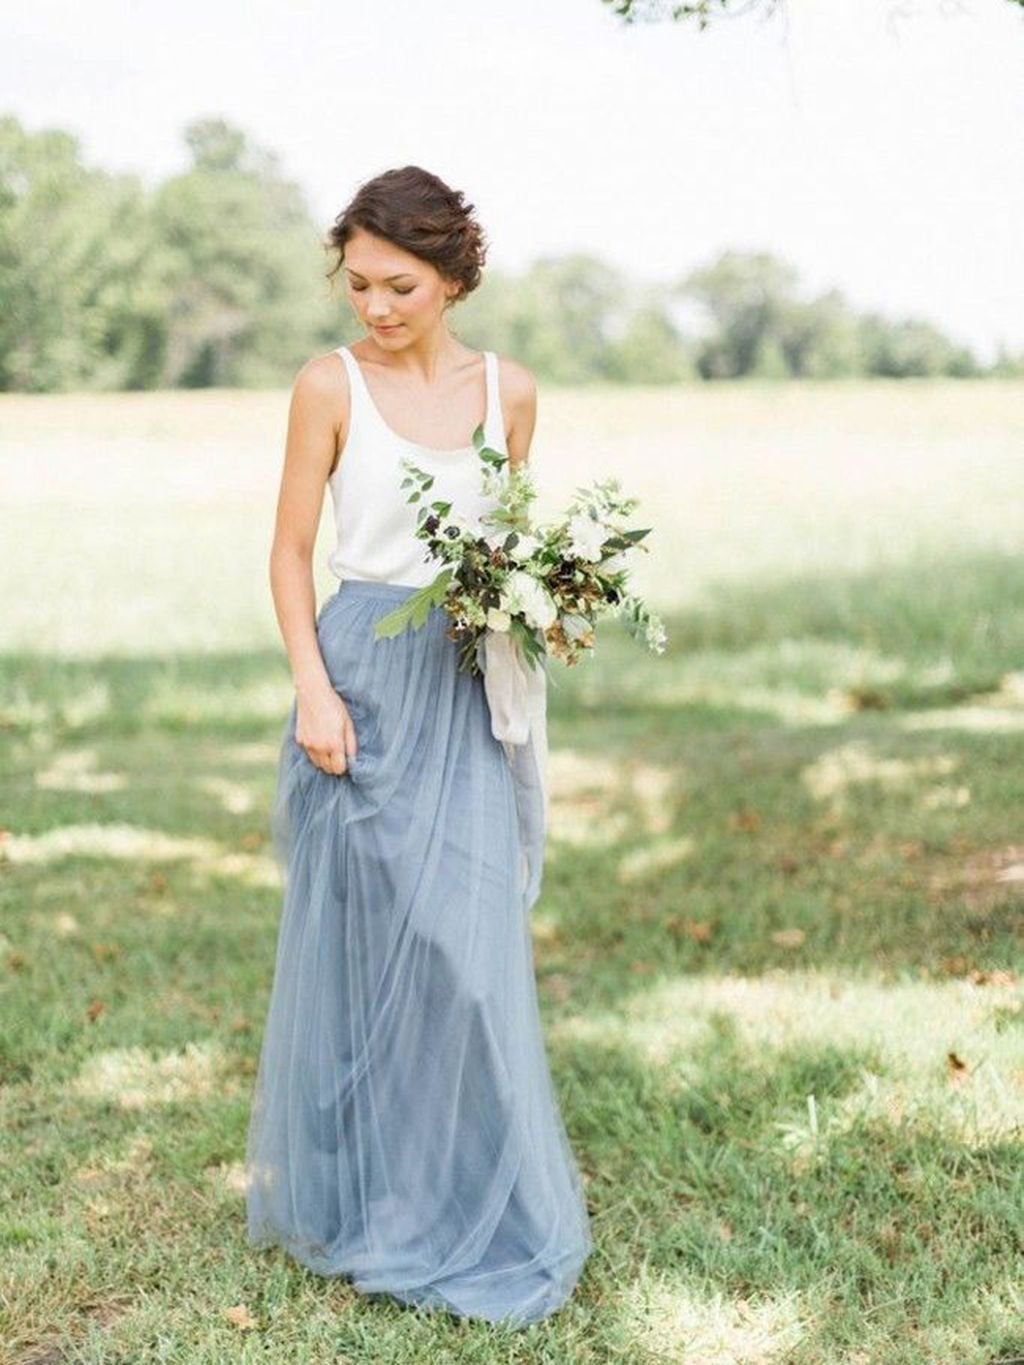 Blue camo wedding dresses   Best Charming Wedding Dress for Outdoor Party